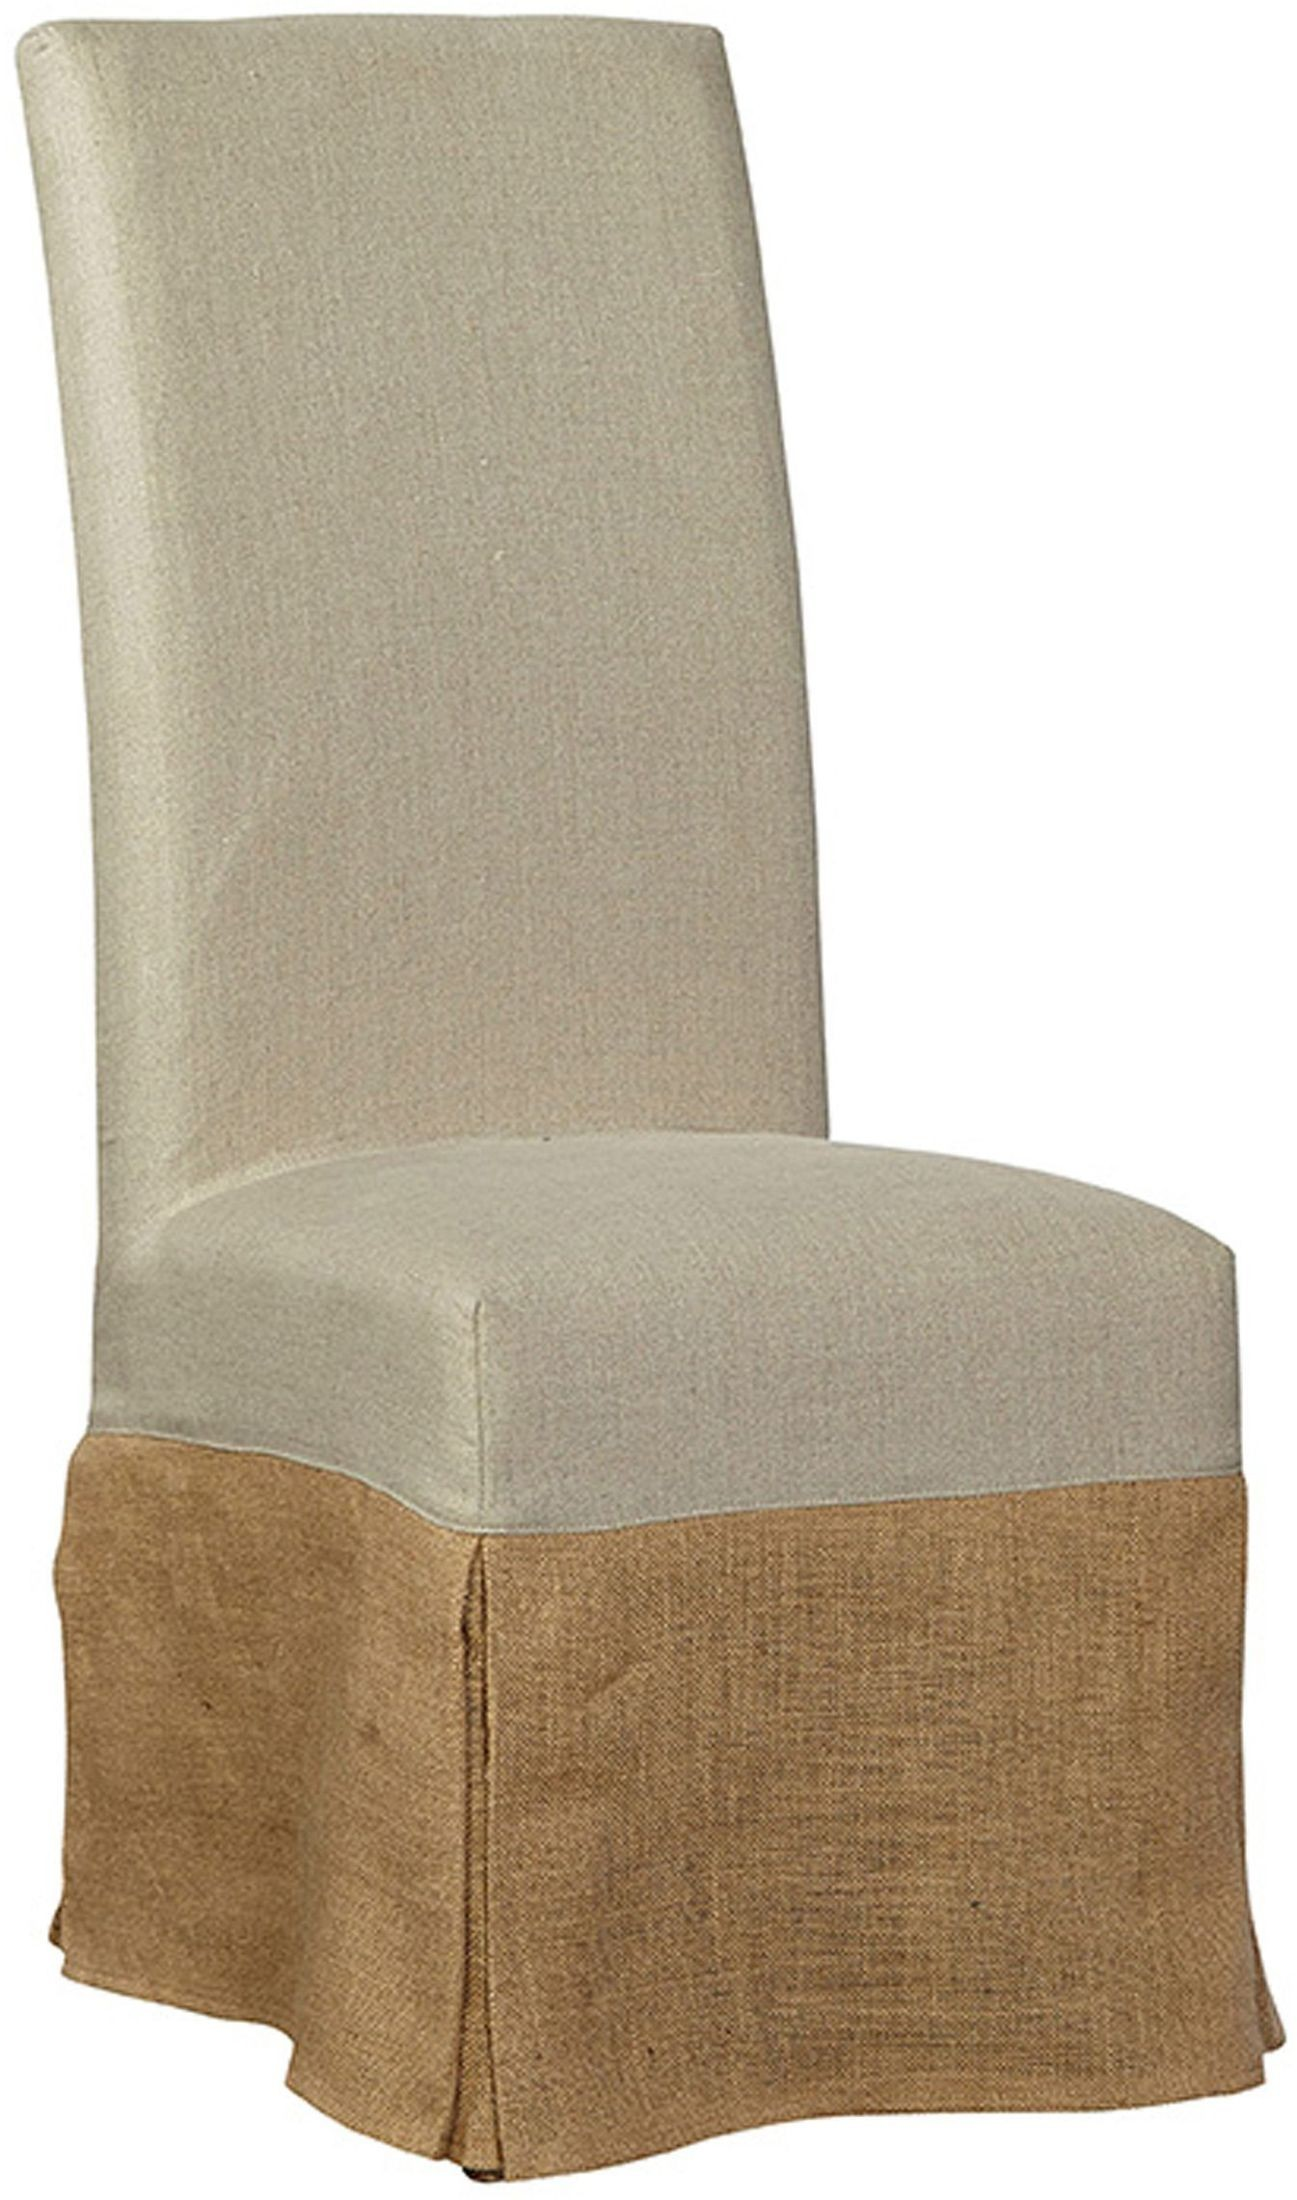 Burlap Chairs Cream Burlap Slip Covered Parsons Chair Set Of 2 From